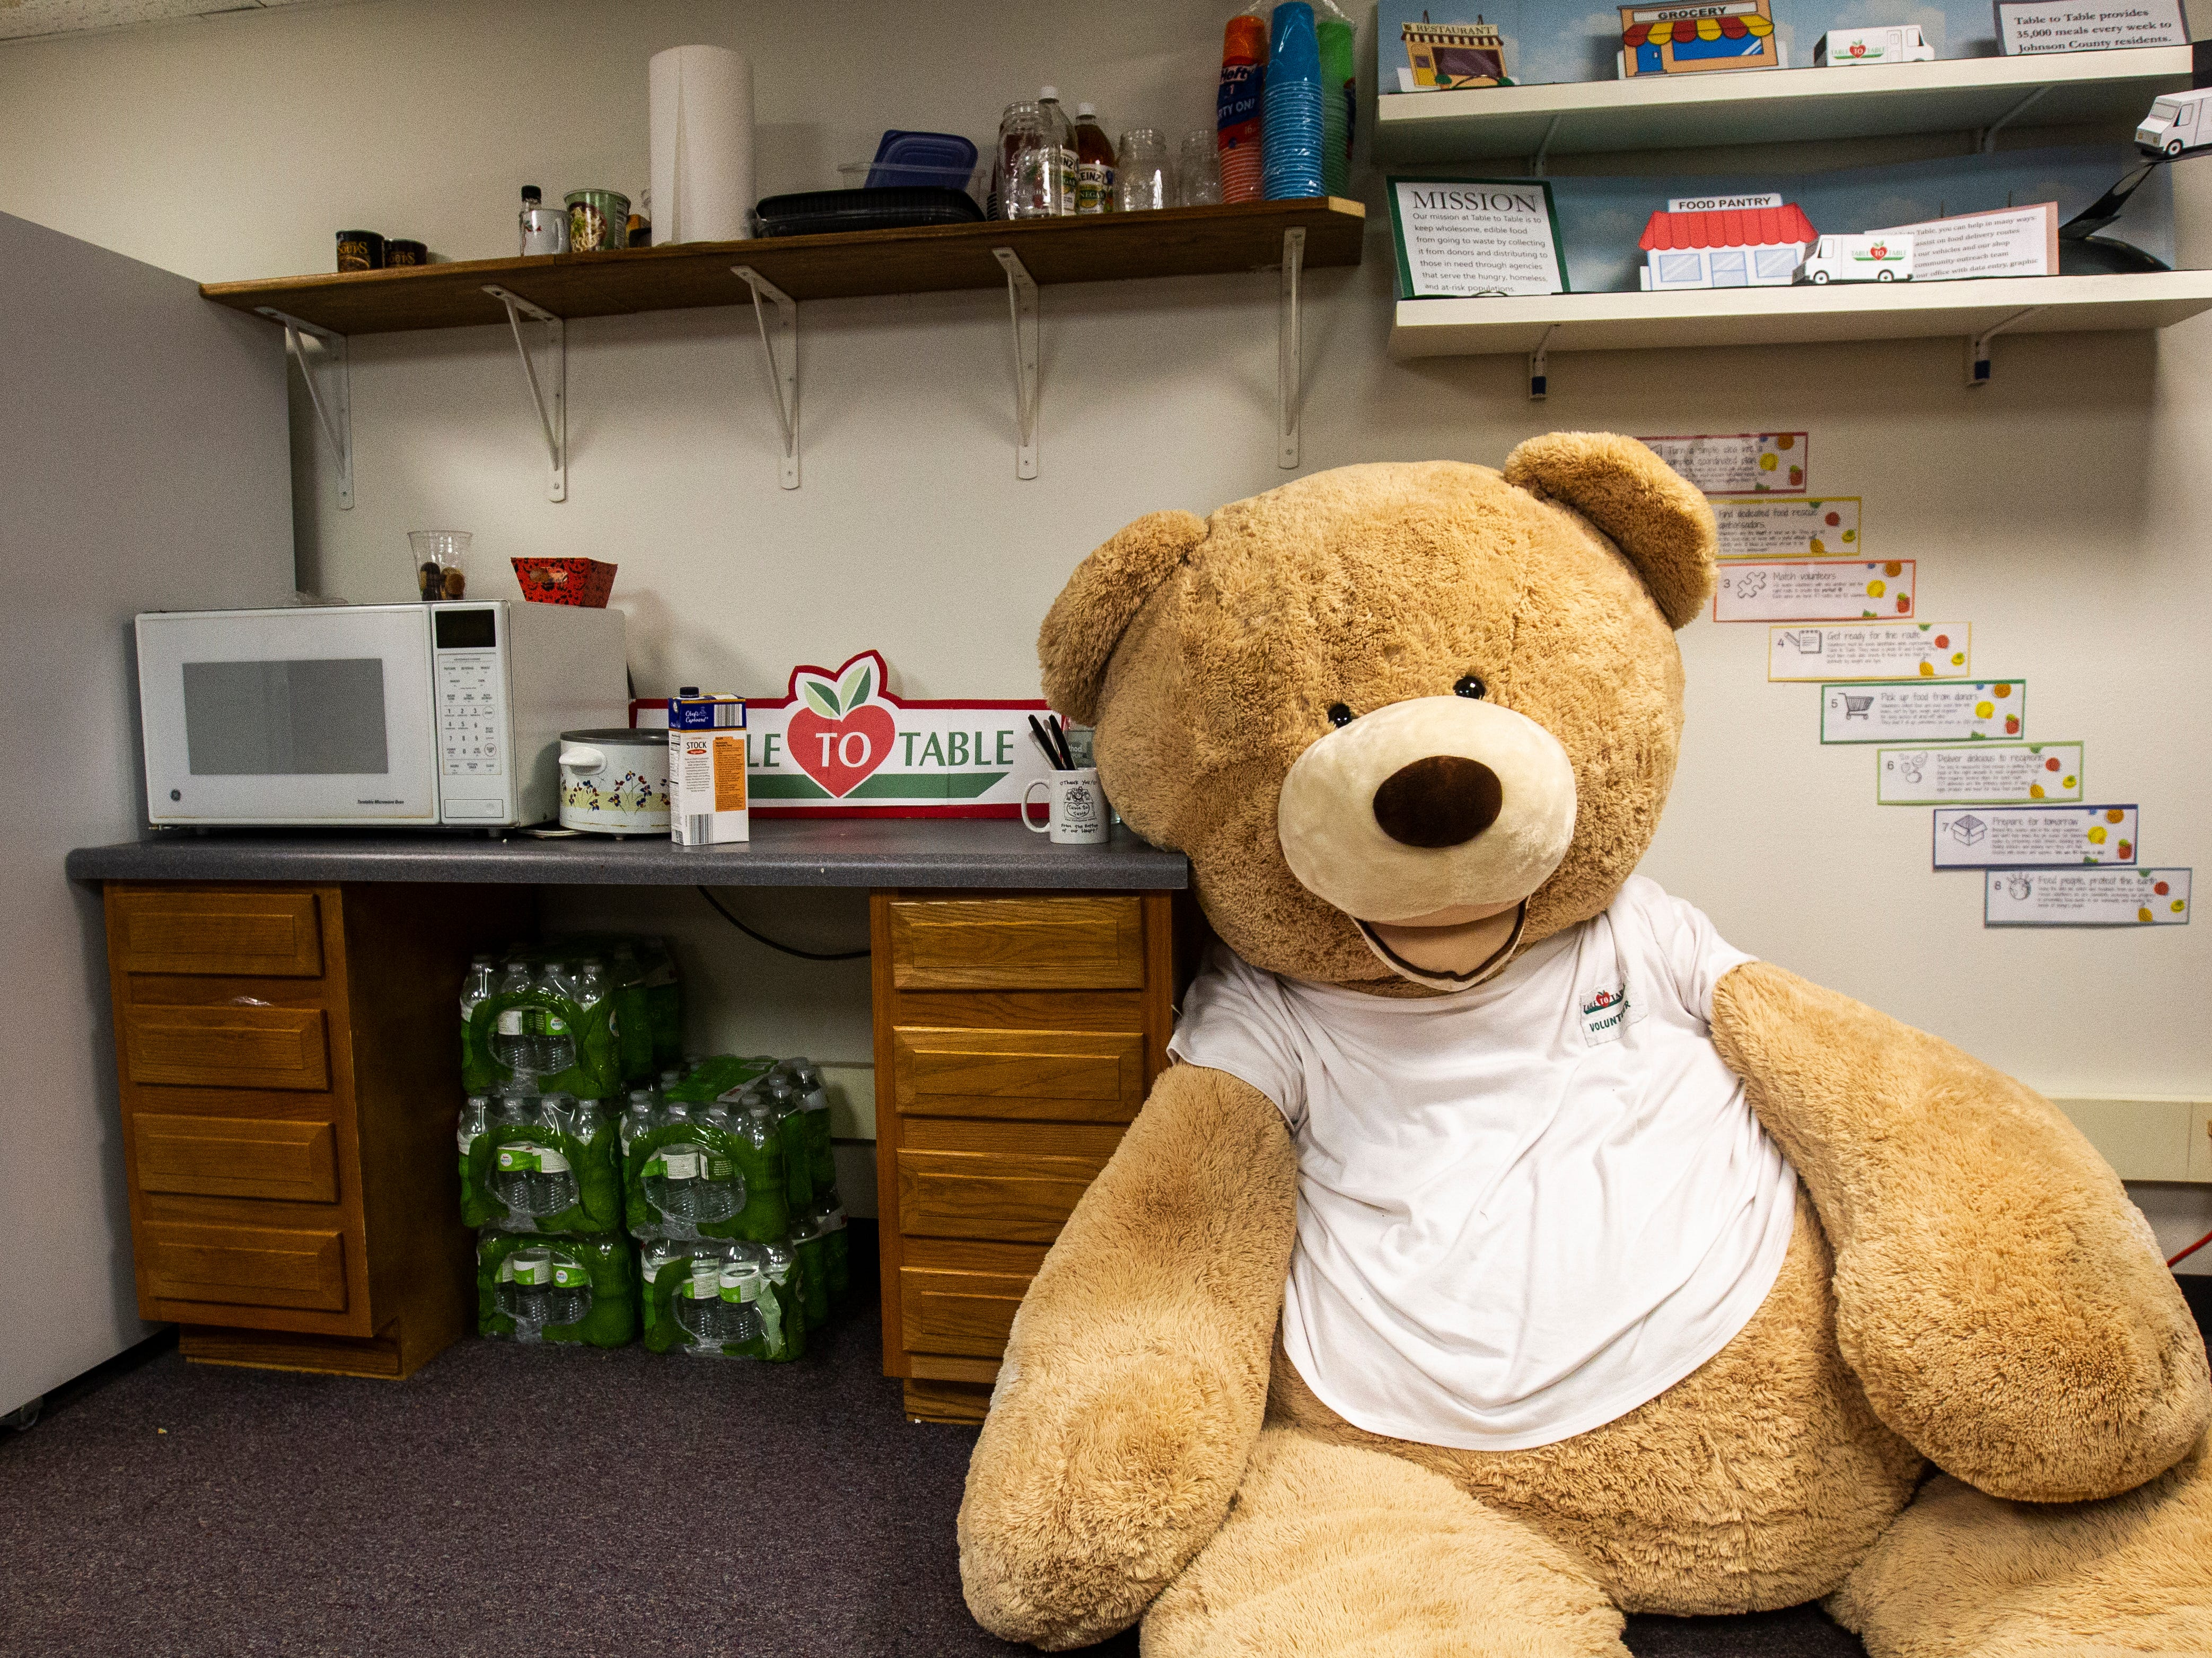 Howard, a large stuffed animal, sits in a back room while wearing a Table to Table volunteer t-shirt on Thursday, Nov. 15, 2018, at the Table to Table offices in Iowa City.